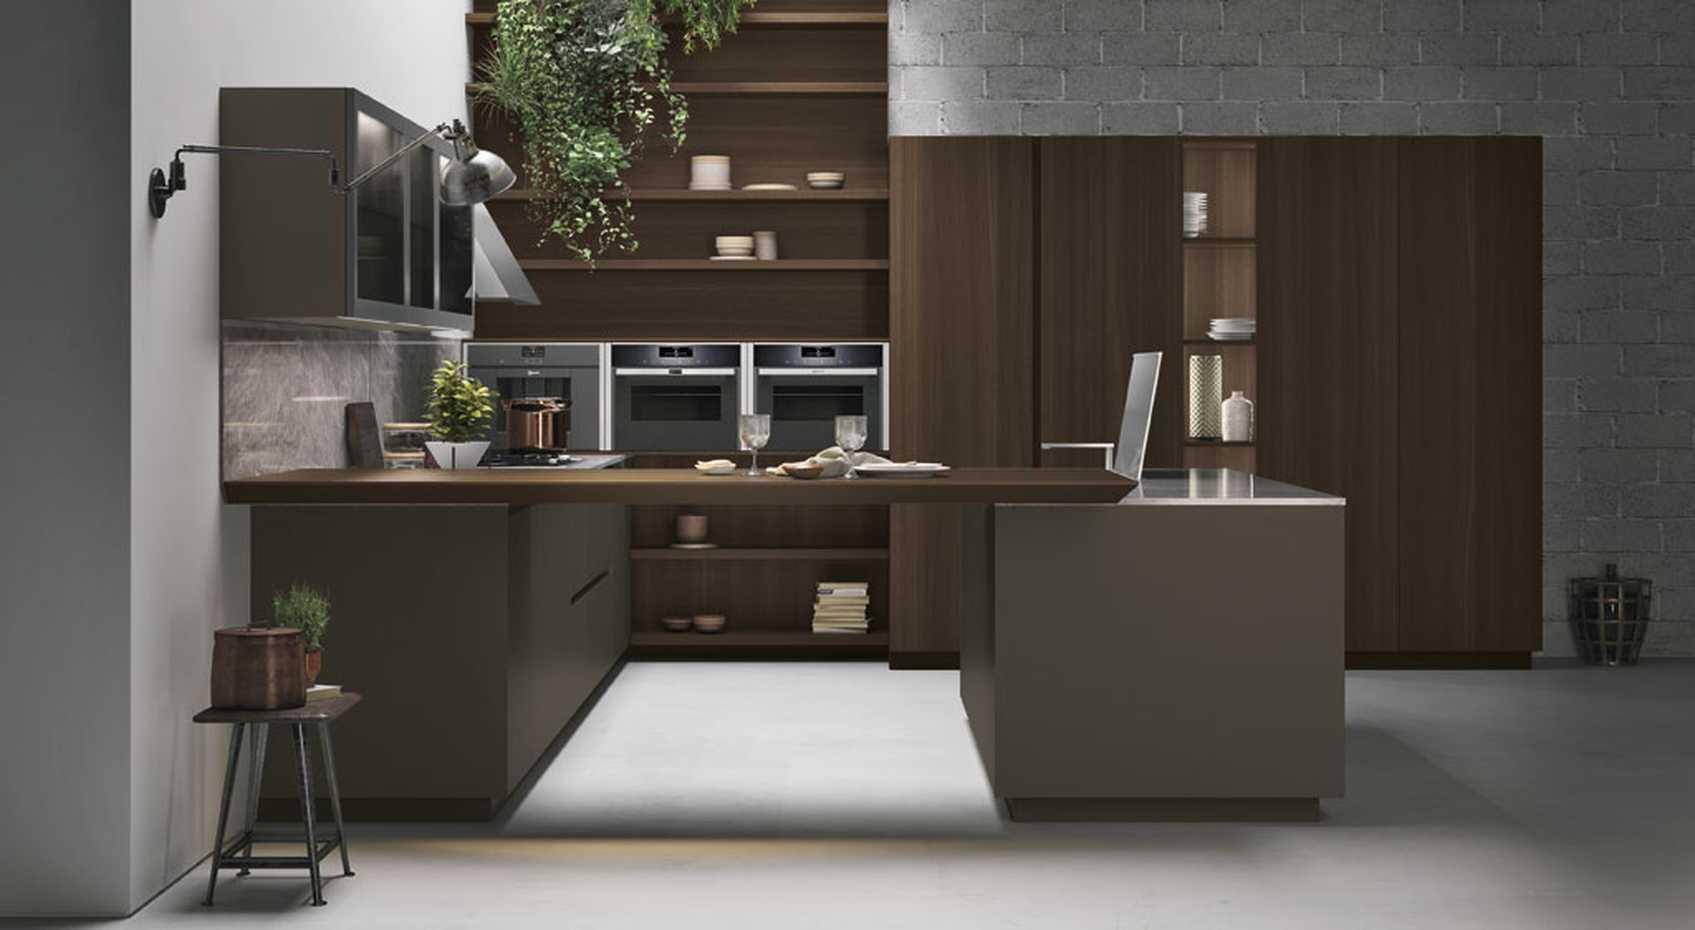 Style by Doimo Cucine product image 2